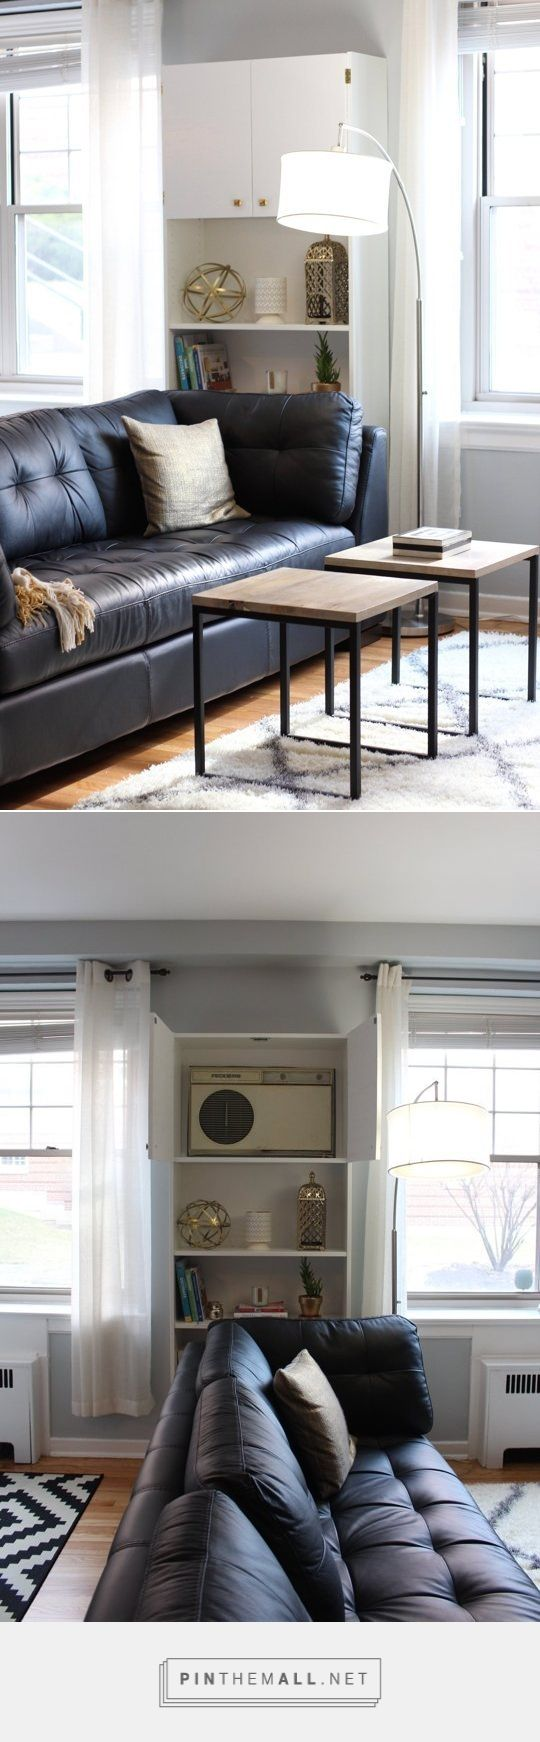 Best 25+ Ac wall unit ideas on Pinterest | Television wall mounts ...